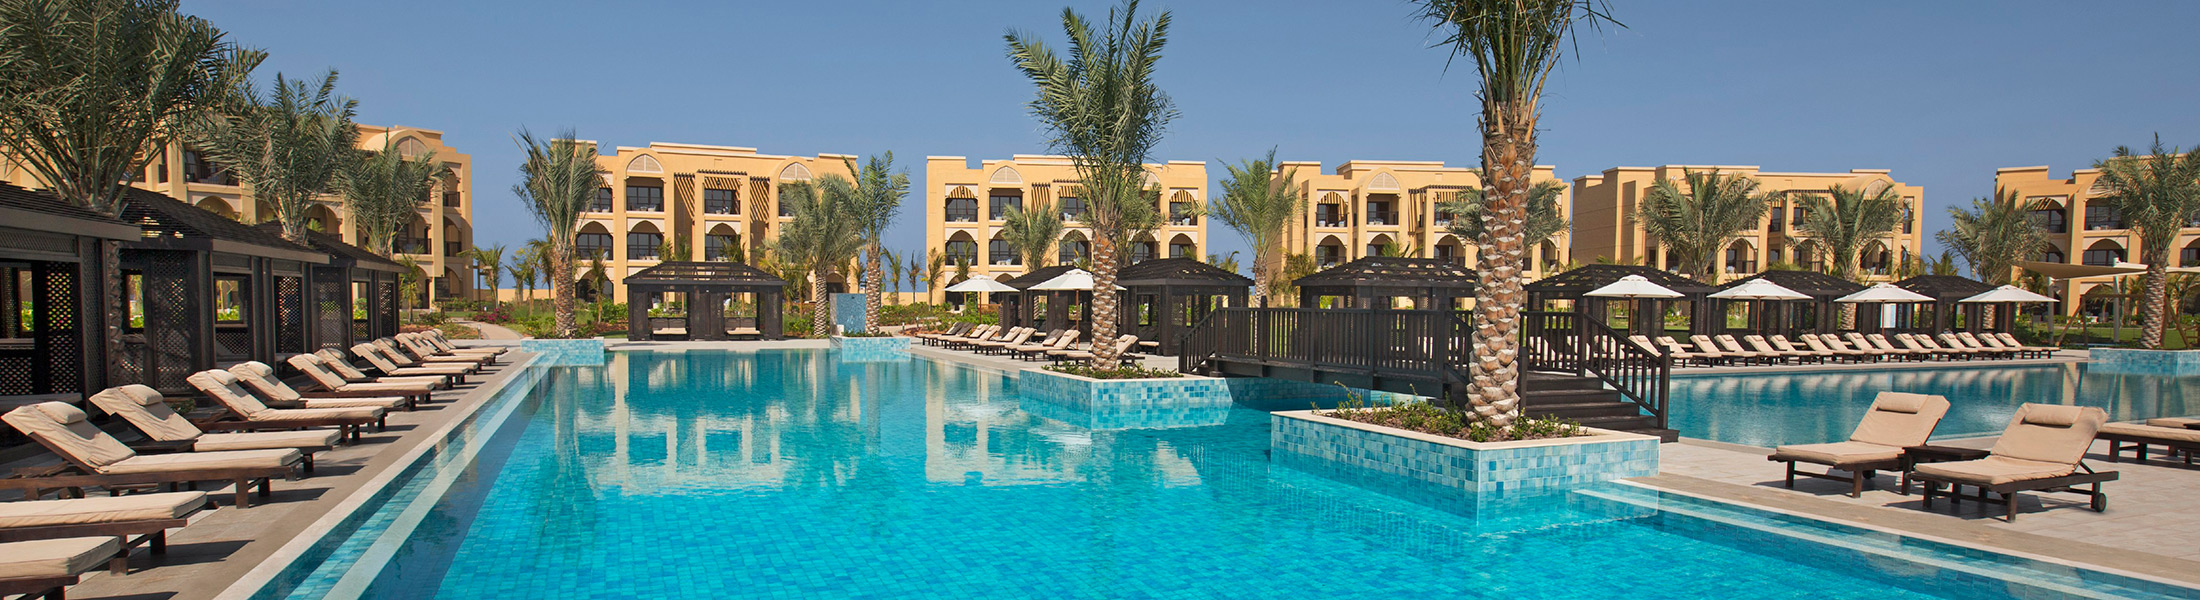 The Villas pool at DoubleTree by Hilton Marjan Island